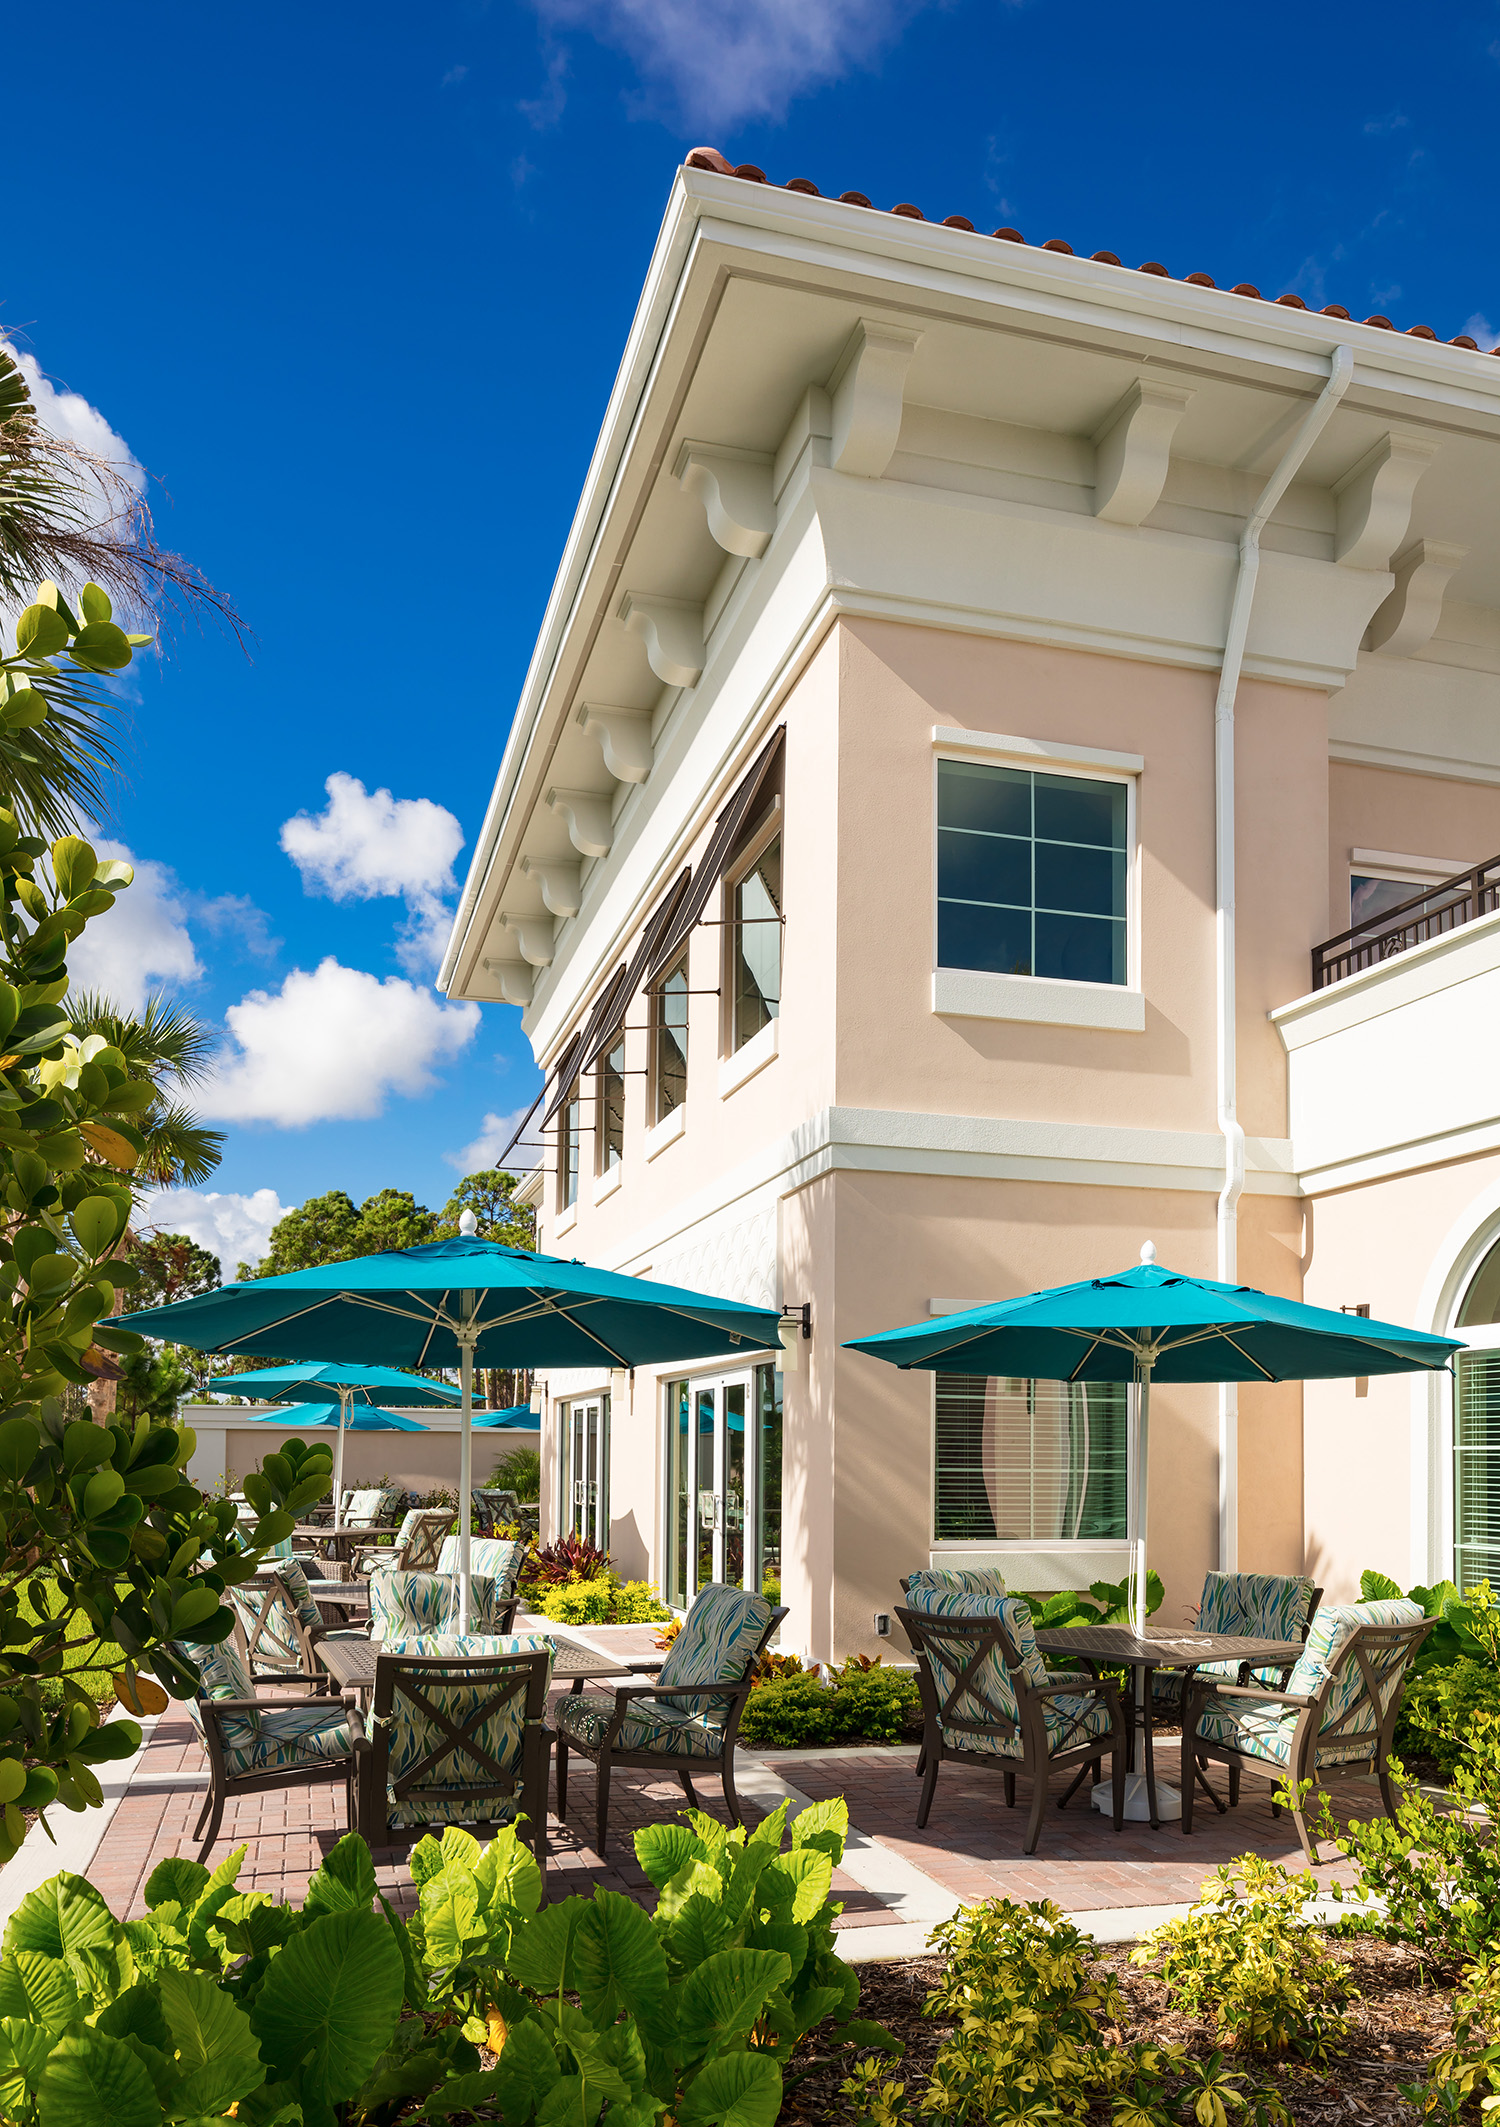 Harborchase of palm beach gardens florida silverstone - Assisted living palm beach gardens ...